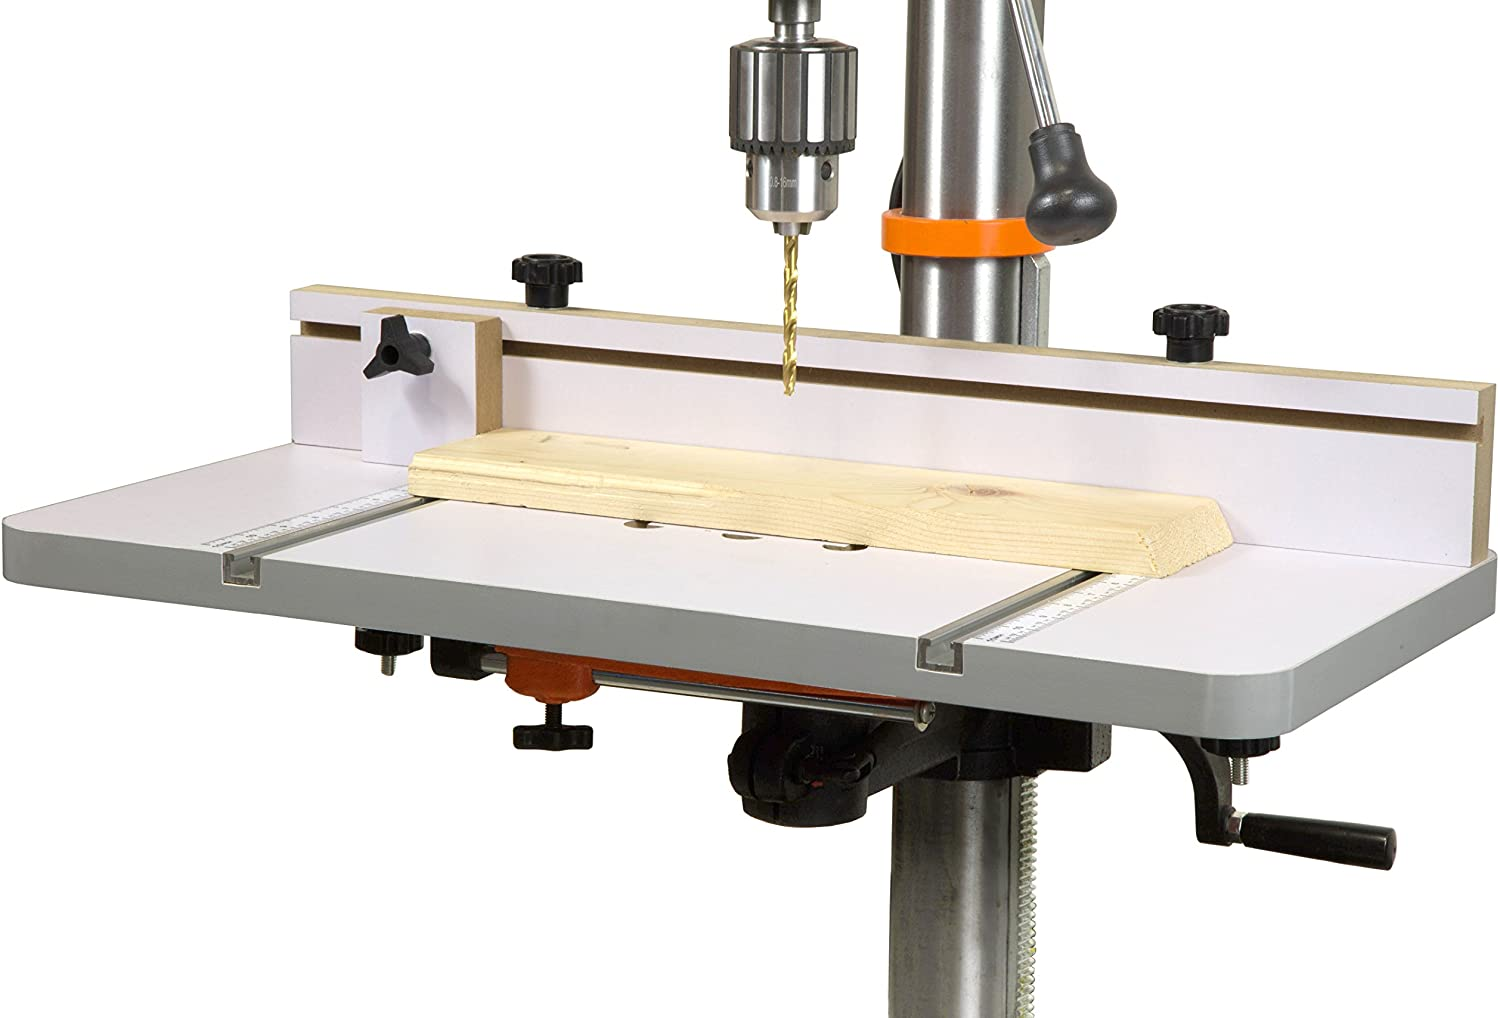 best drill press table: WEN DPA2412T - the best choice